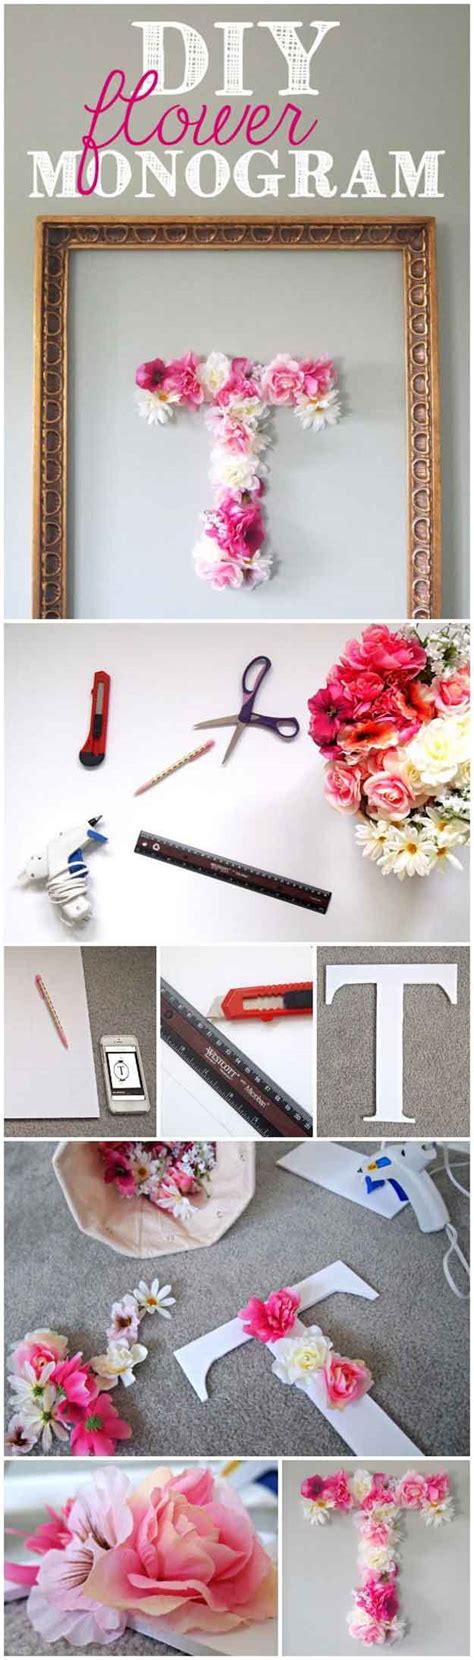 diy projects for bedroom decor diy projects for bedroom diy ready